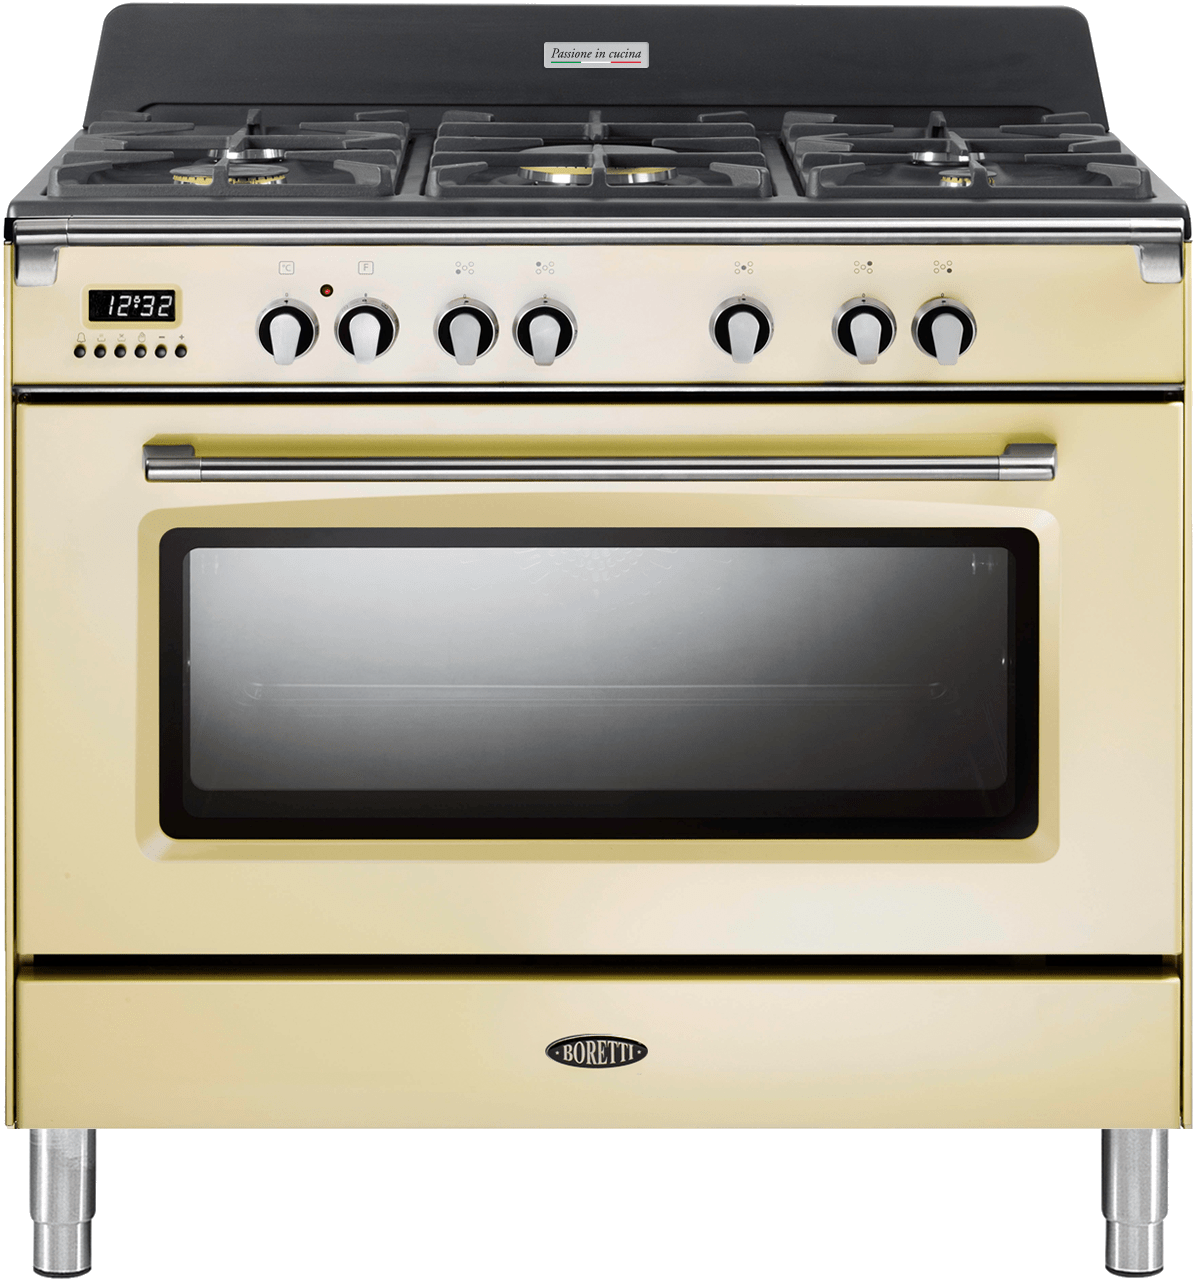 Boretti Gasfornuis 90 Cm Boretti Cfbg901owbe Fornuis 90cm 1 Oven Oud Wit Gas Be Art Craft